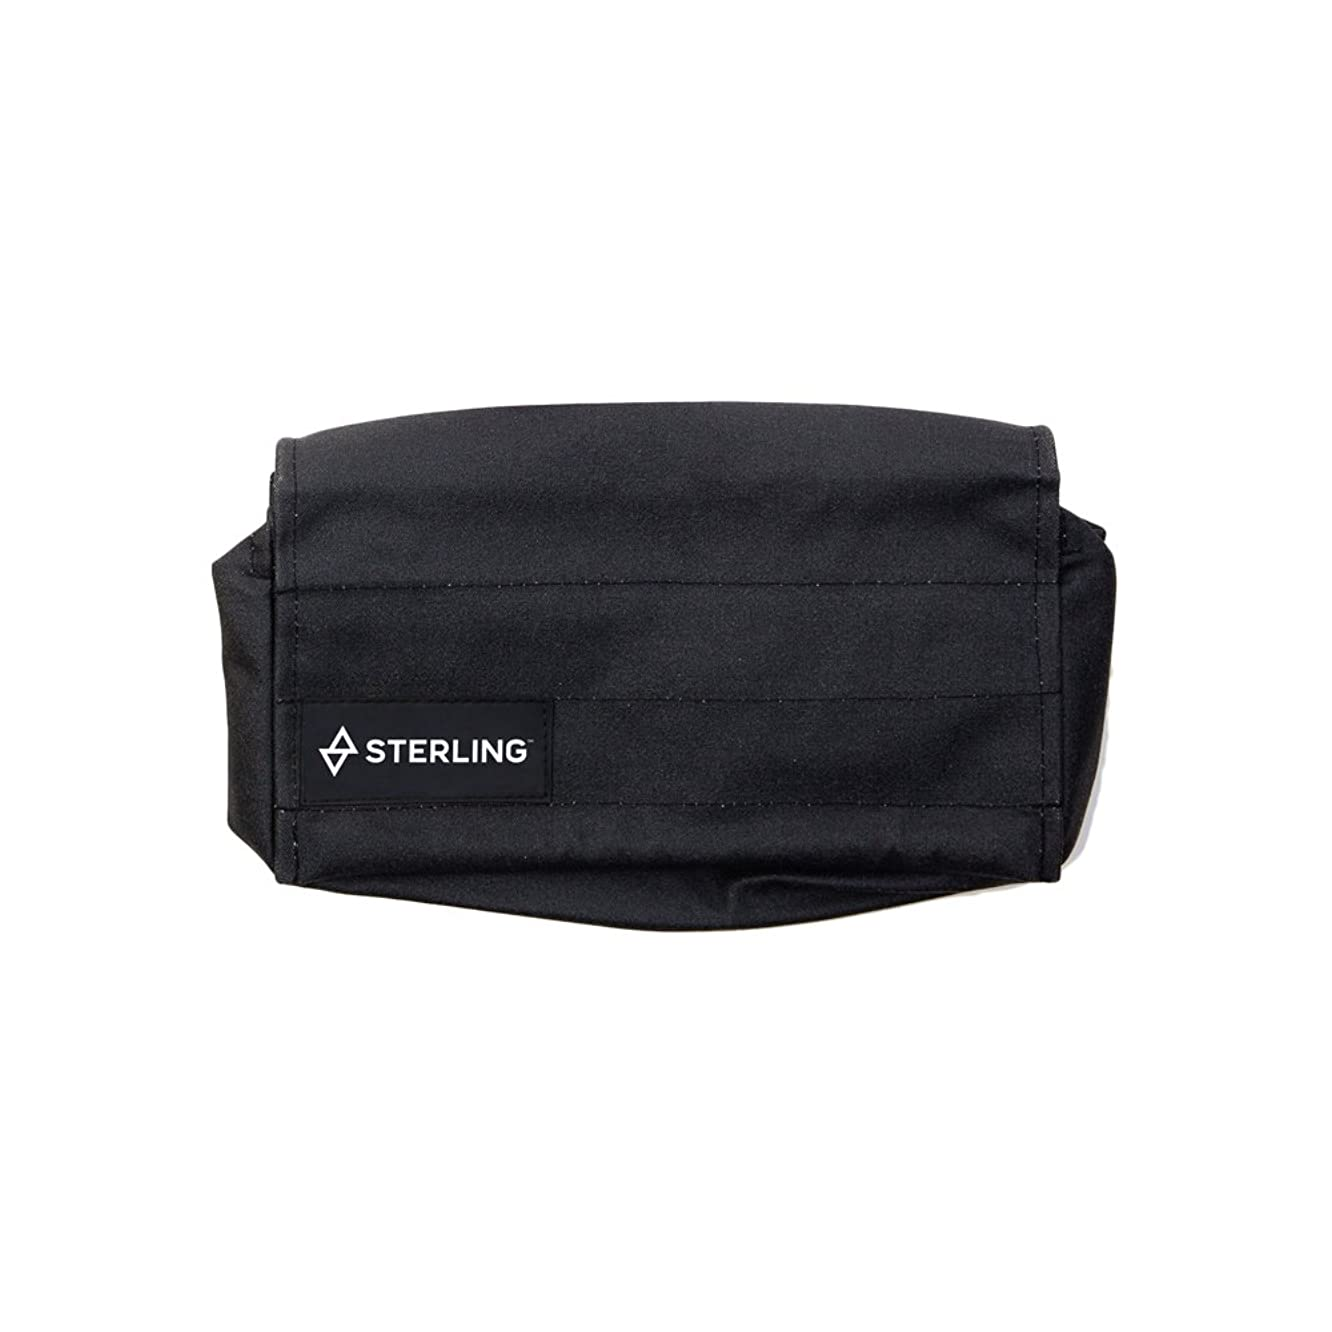 Sterling F4-50 Heat resistant Escape Bag